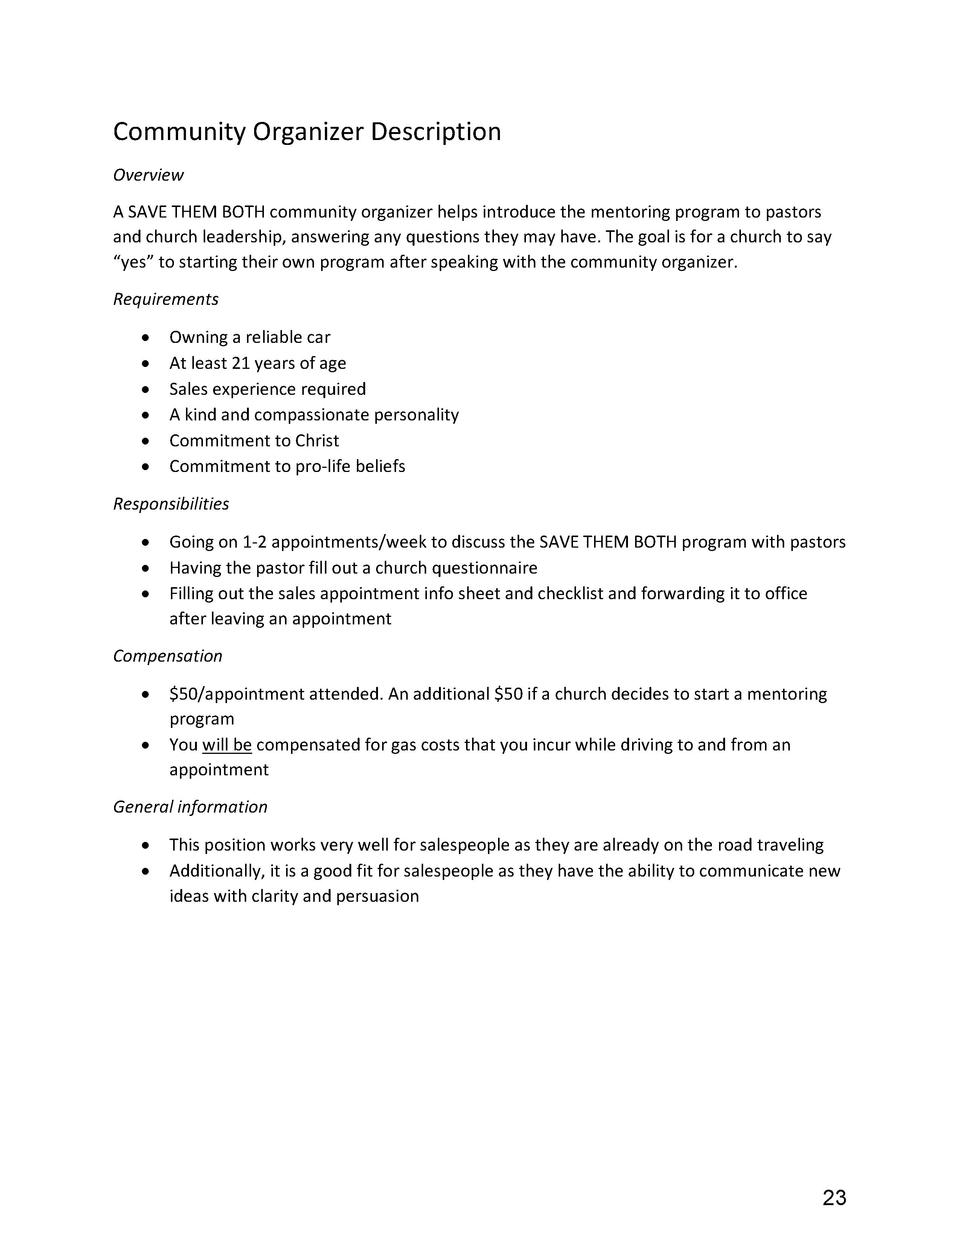 Community Organizer Description Overview A SAVE THEM BOTH community organizer helps introduce the mentoring program to pas...